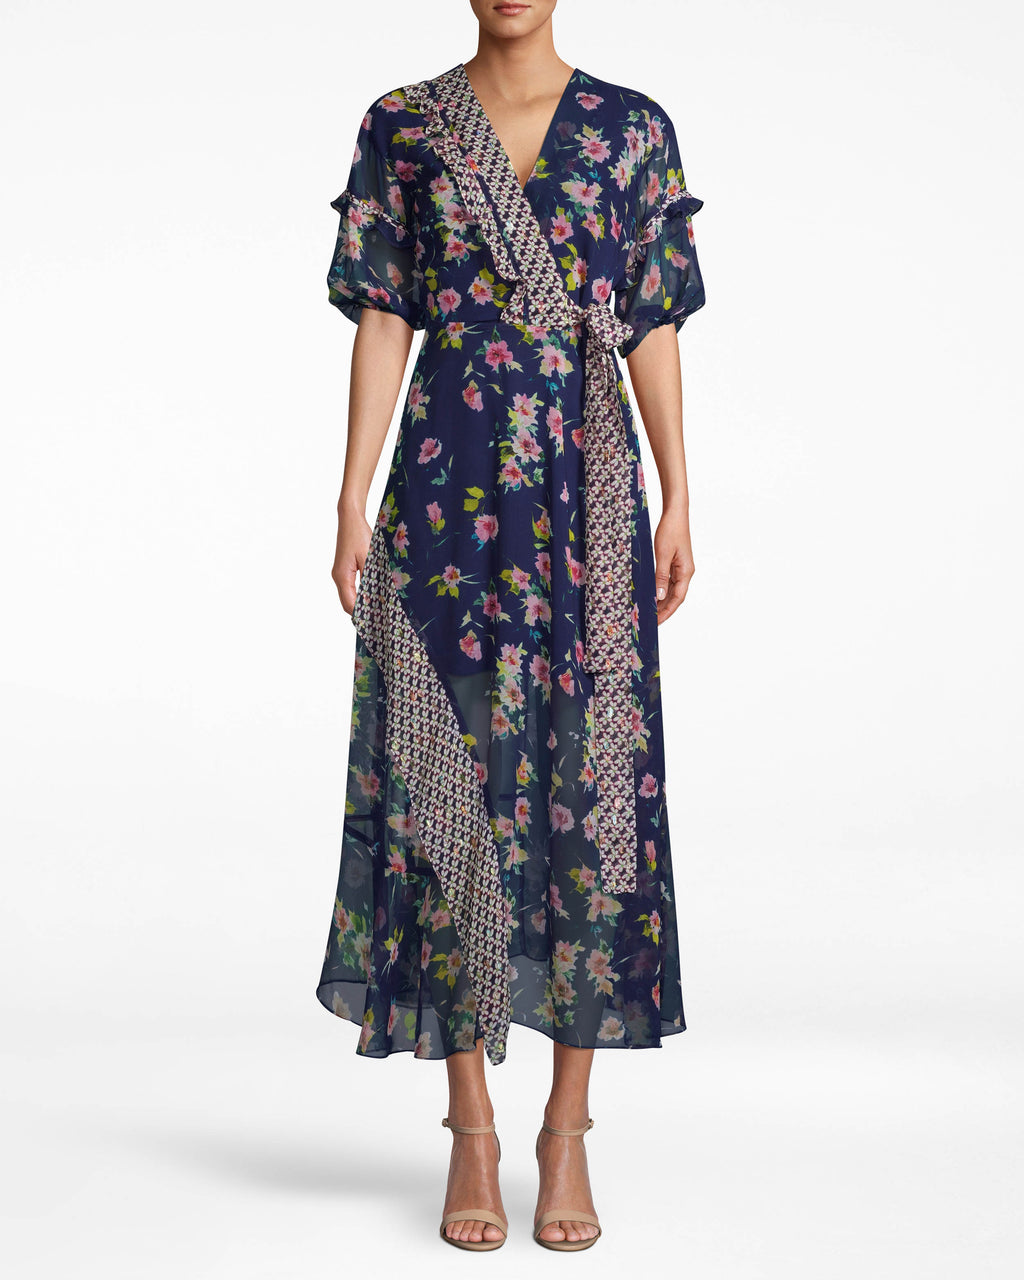 CF10312 - COSMO FLORA KIMONO DRESS - dresses - midi - THIS KIMONO INSPIRED DRESS WILL HAVE YOU TURNING HEADS ALL NIGHT. RUFFLED CAP SLEEVES AND AN ASYMMETRICAL HEM ADD TEXTURE. A SASH TIES THE WHOLE THING TOGETHER.